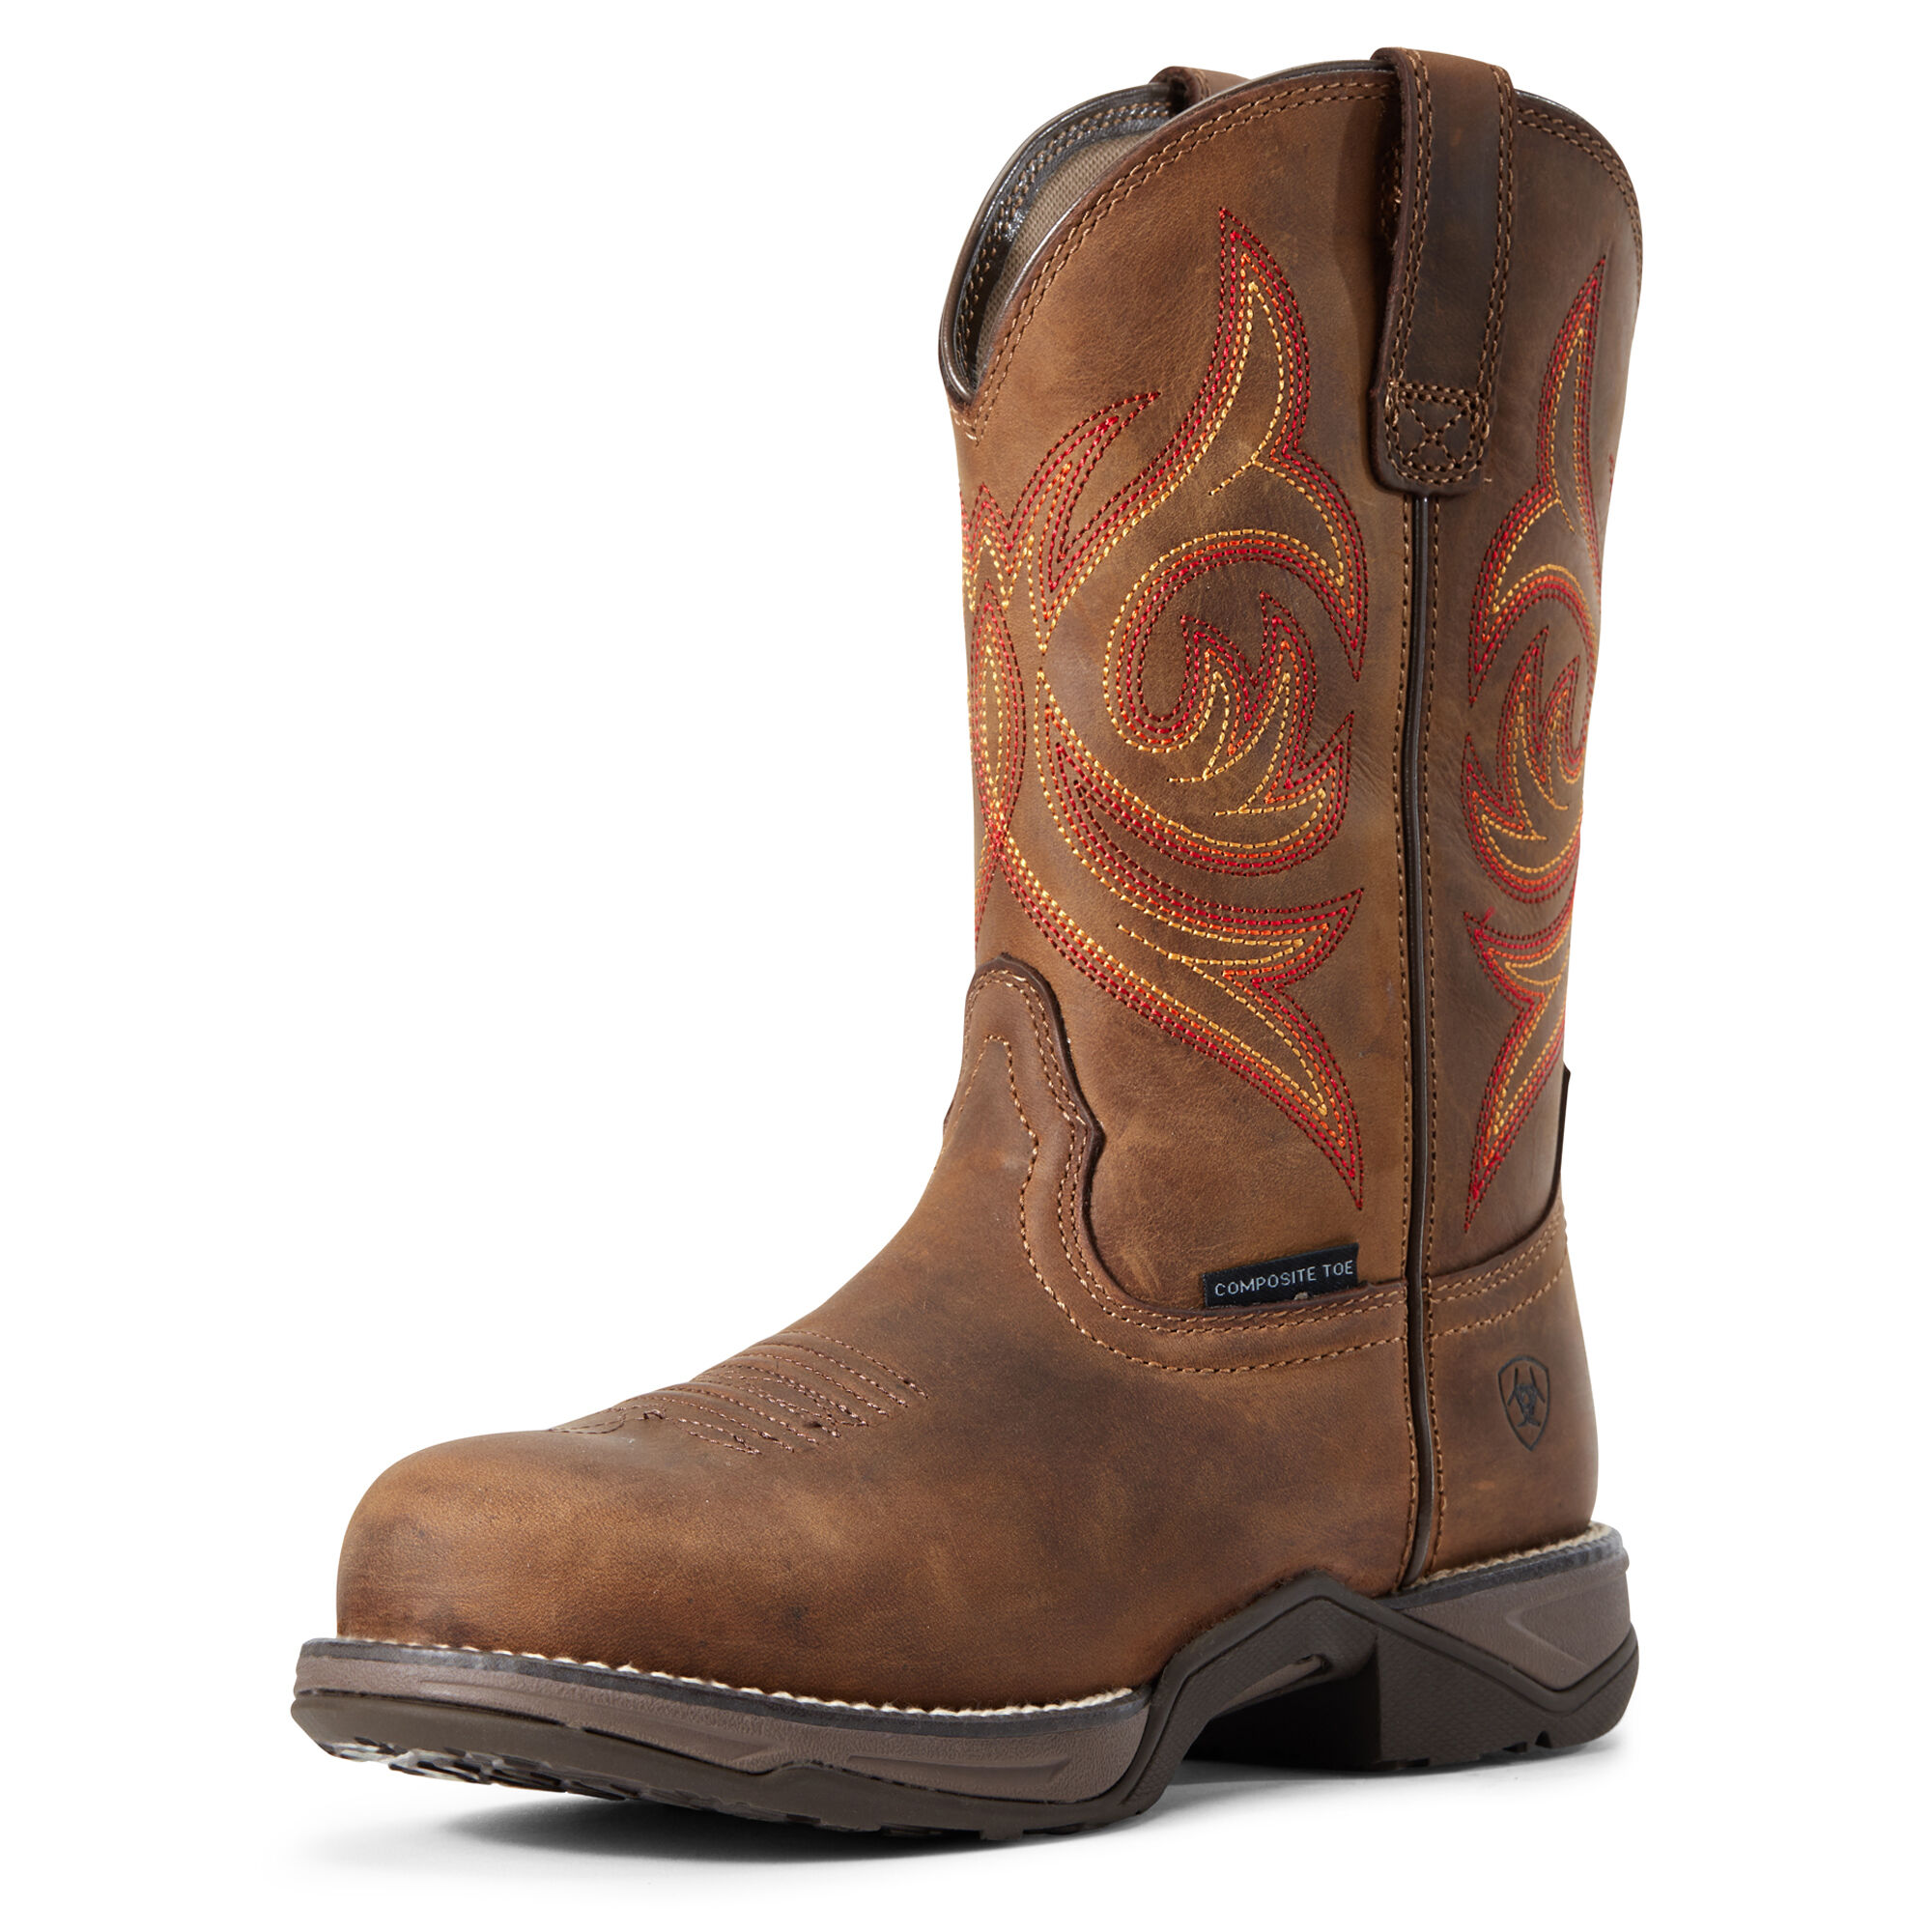 Women's Anthem Round Toe Composite Toe Work Boots in Distressed Brown by Ariat